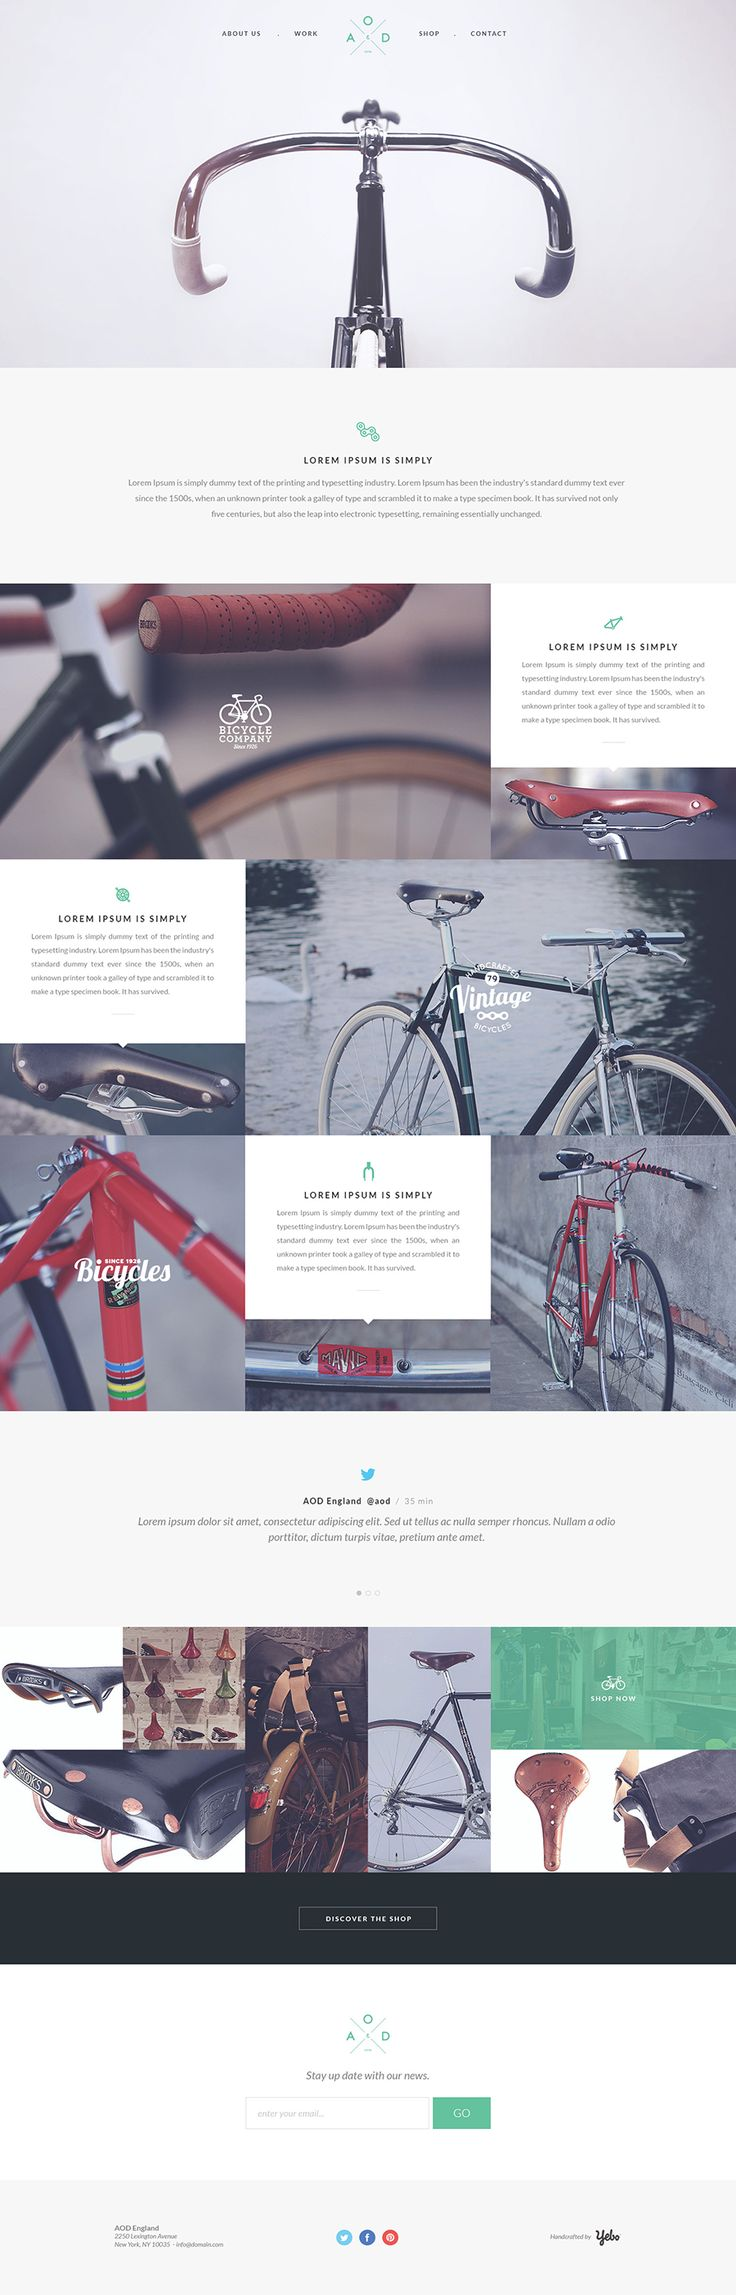 We love the minimalist approach to displaying the products (beautiful bikes, no less!) on this website design. #webdesign #minimalist #design